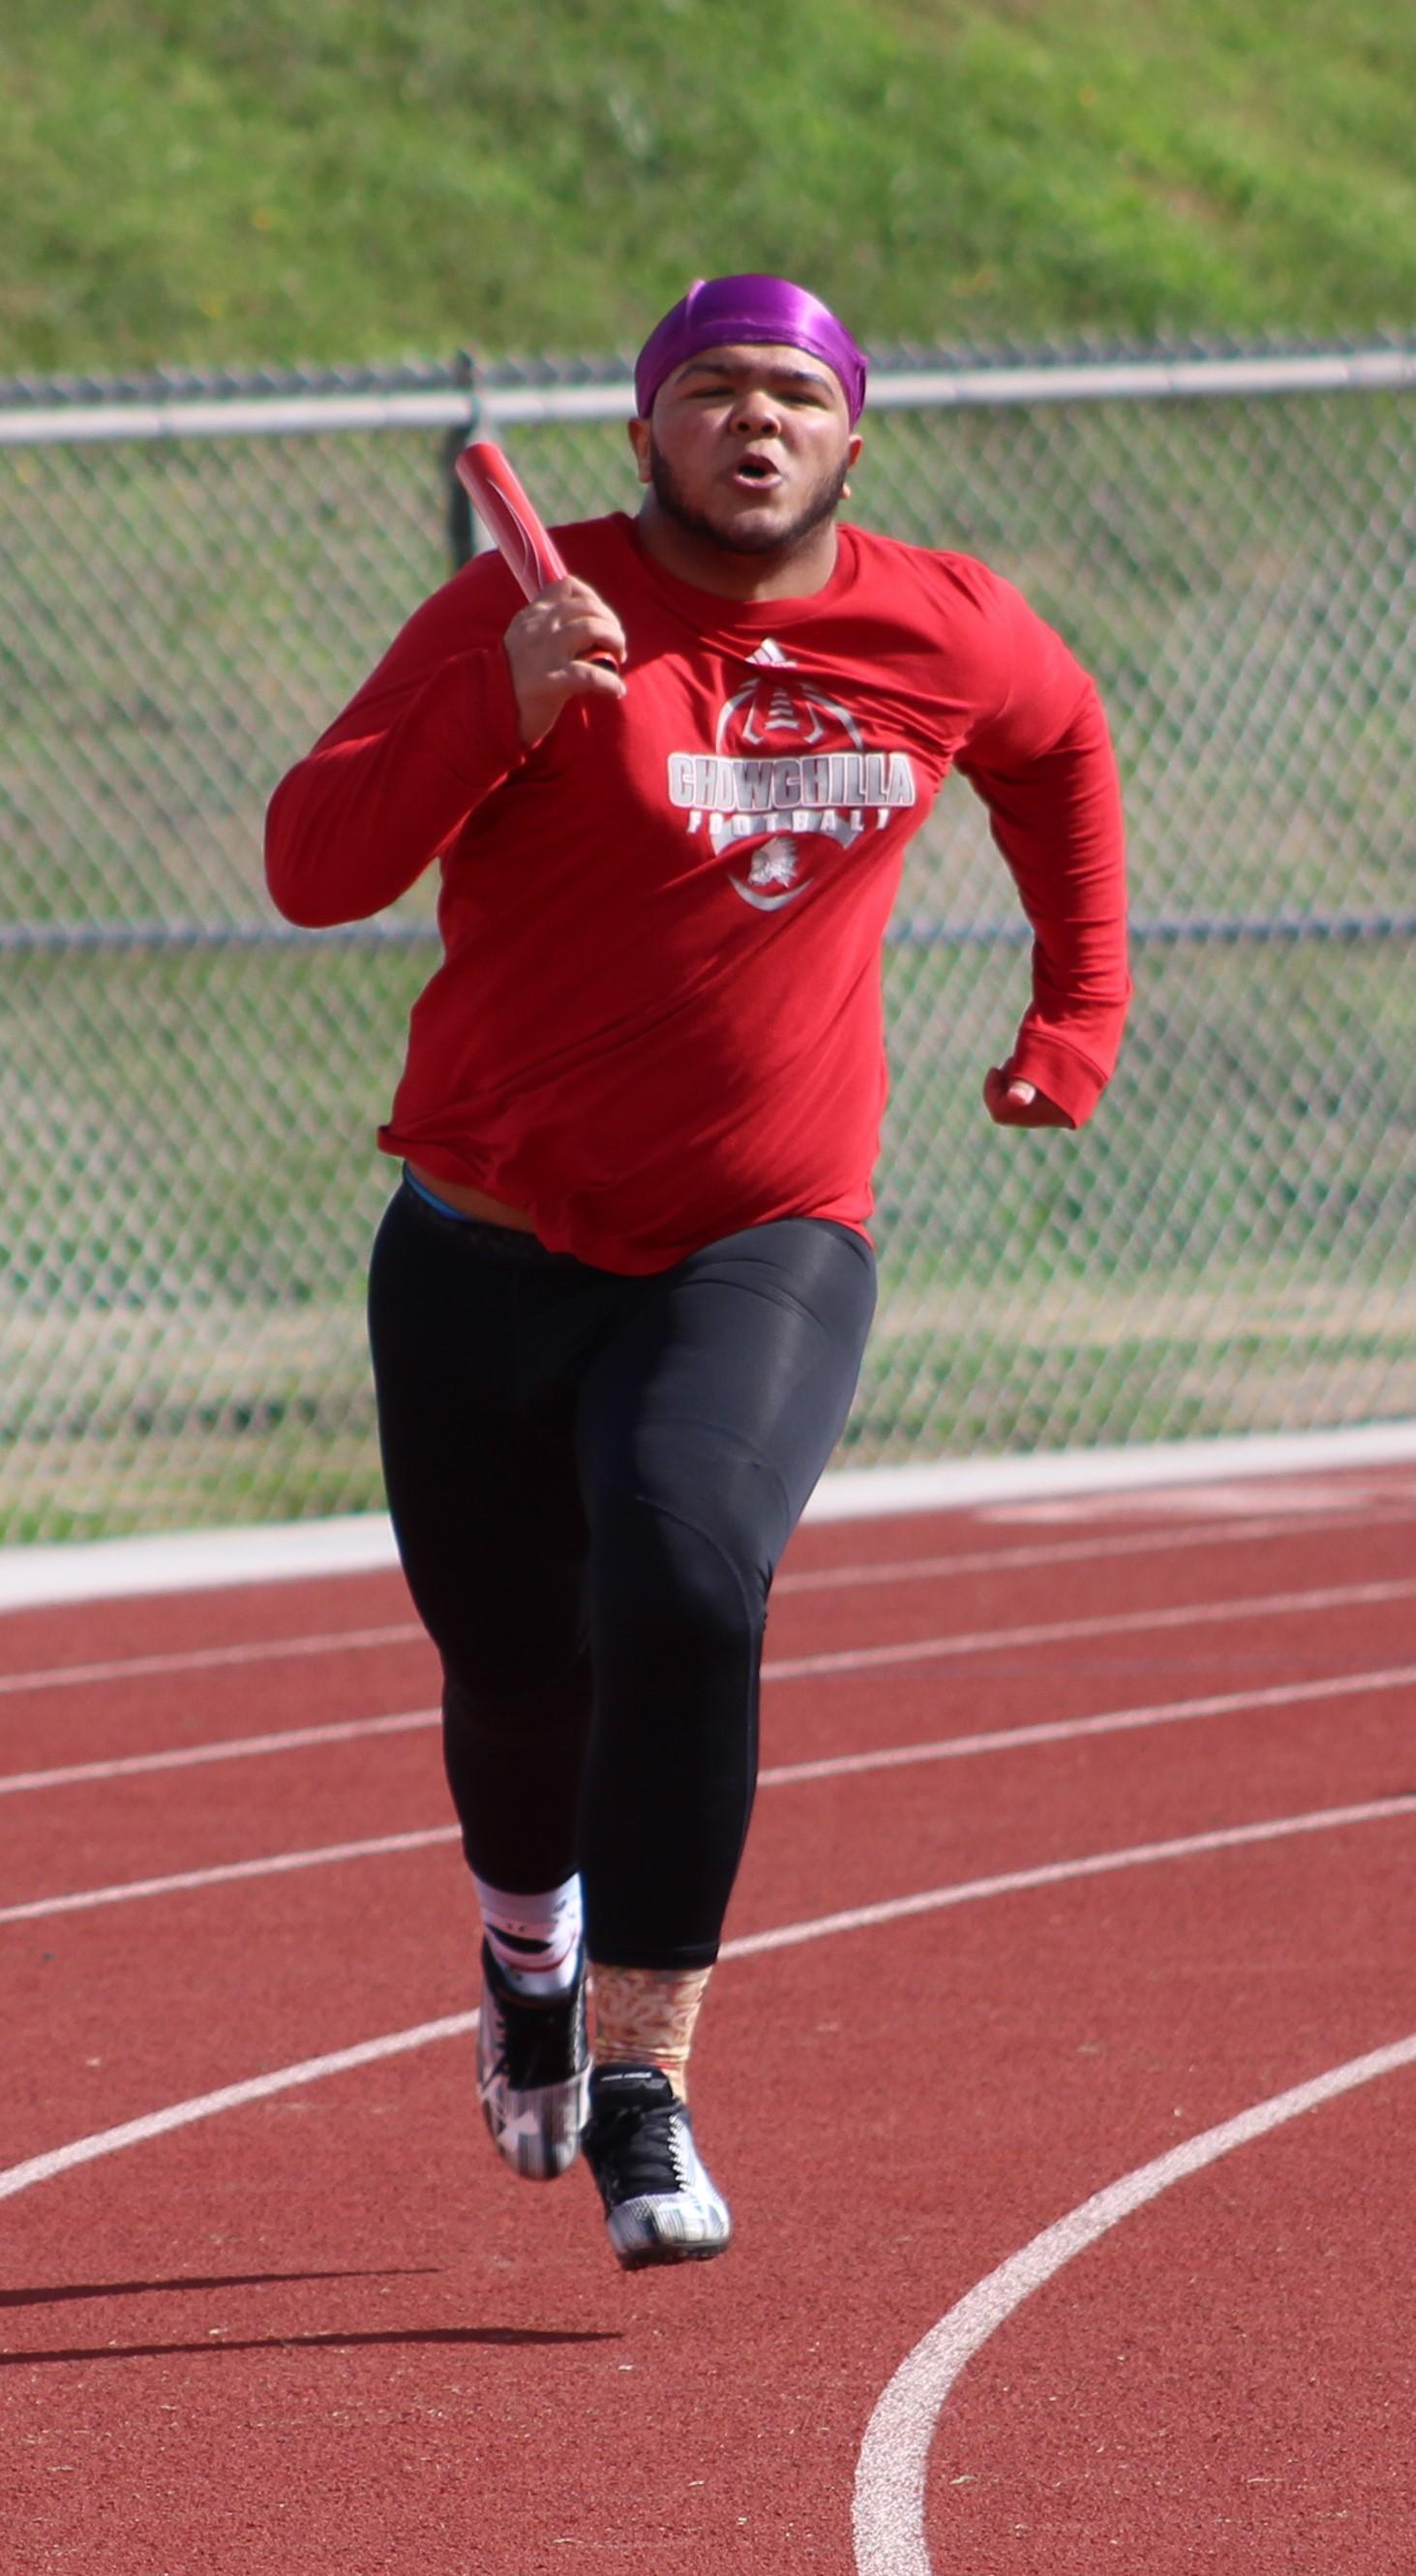 Track and Field athletes in action at Fowler